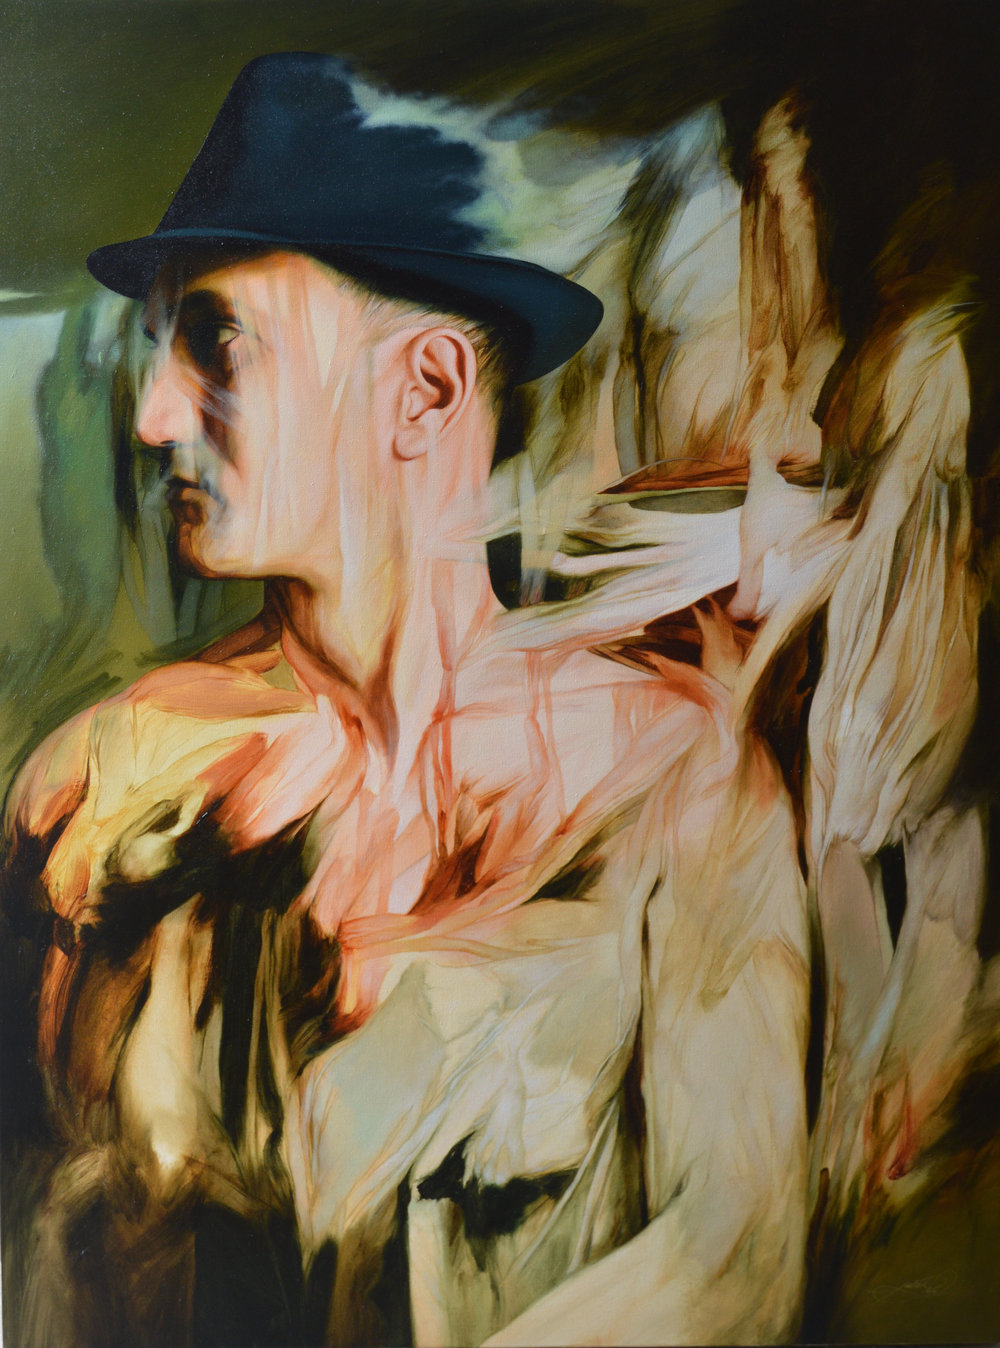 """Fading Flesh"" by   Julio Cesar Rodríguez, 48x36in, oil on canvas (2016)"